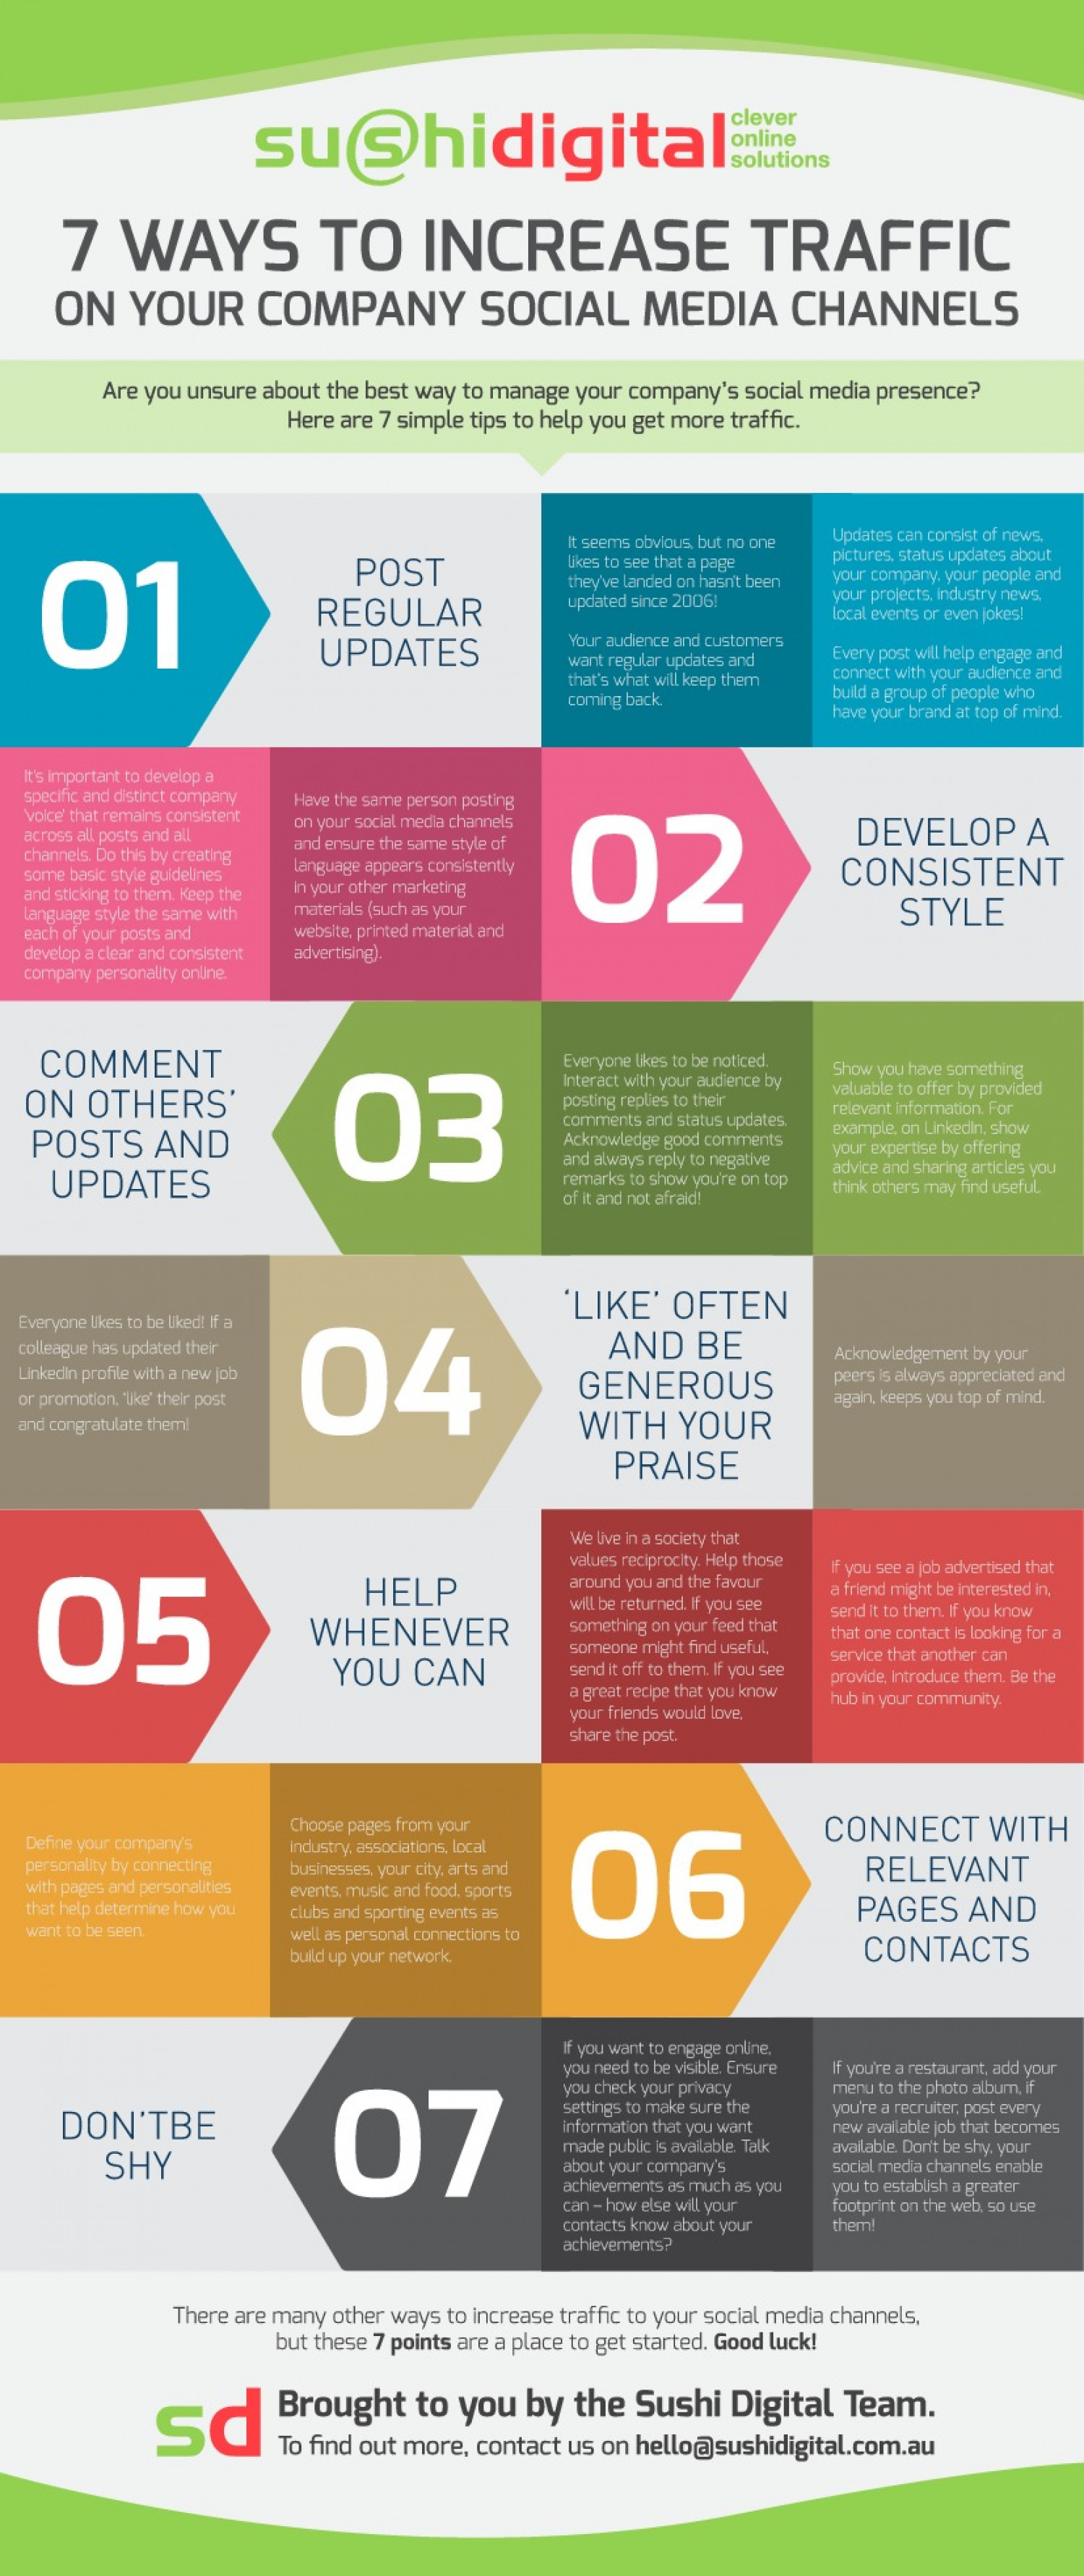 7 Ways to Increase Traffic on Your Company Social Media Channels Infographic